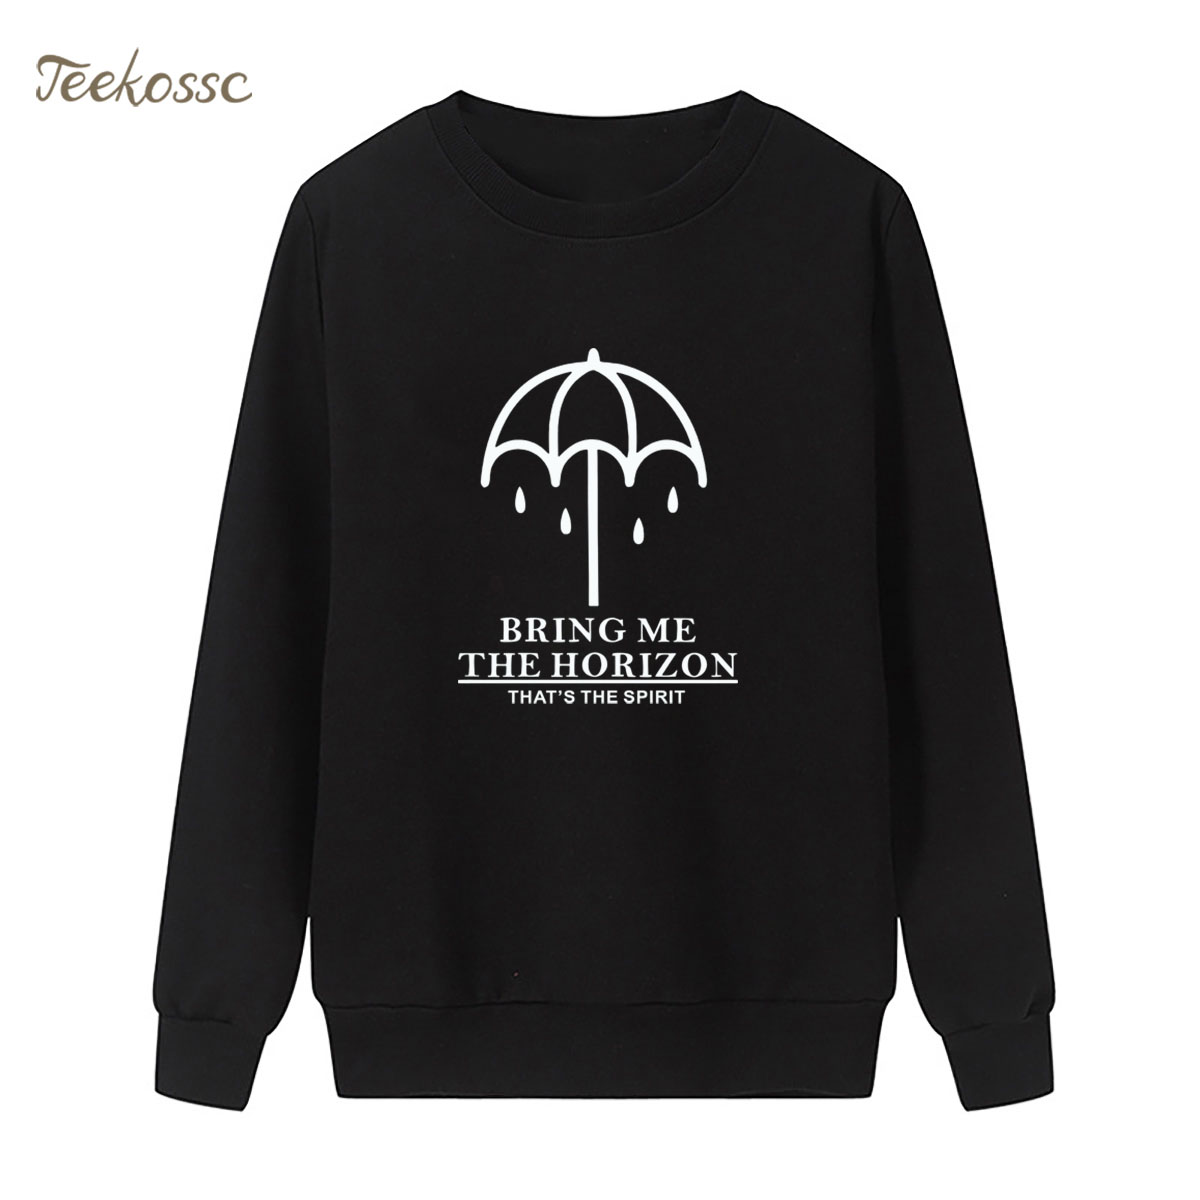 Band Punk Rock Sweatshirt Kpop Hip Hop Print Hoodie 2018 New Brand Winter Autumn Women Lasdies Pullover Loose Fleece Streetwear